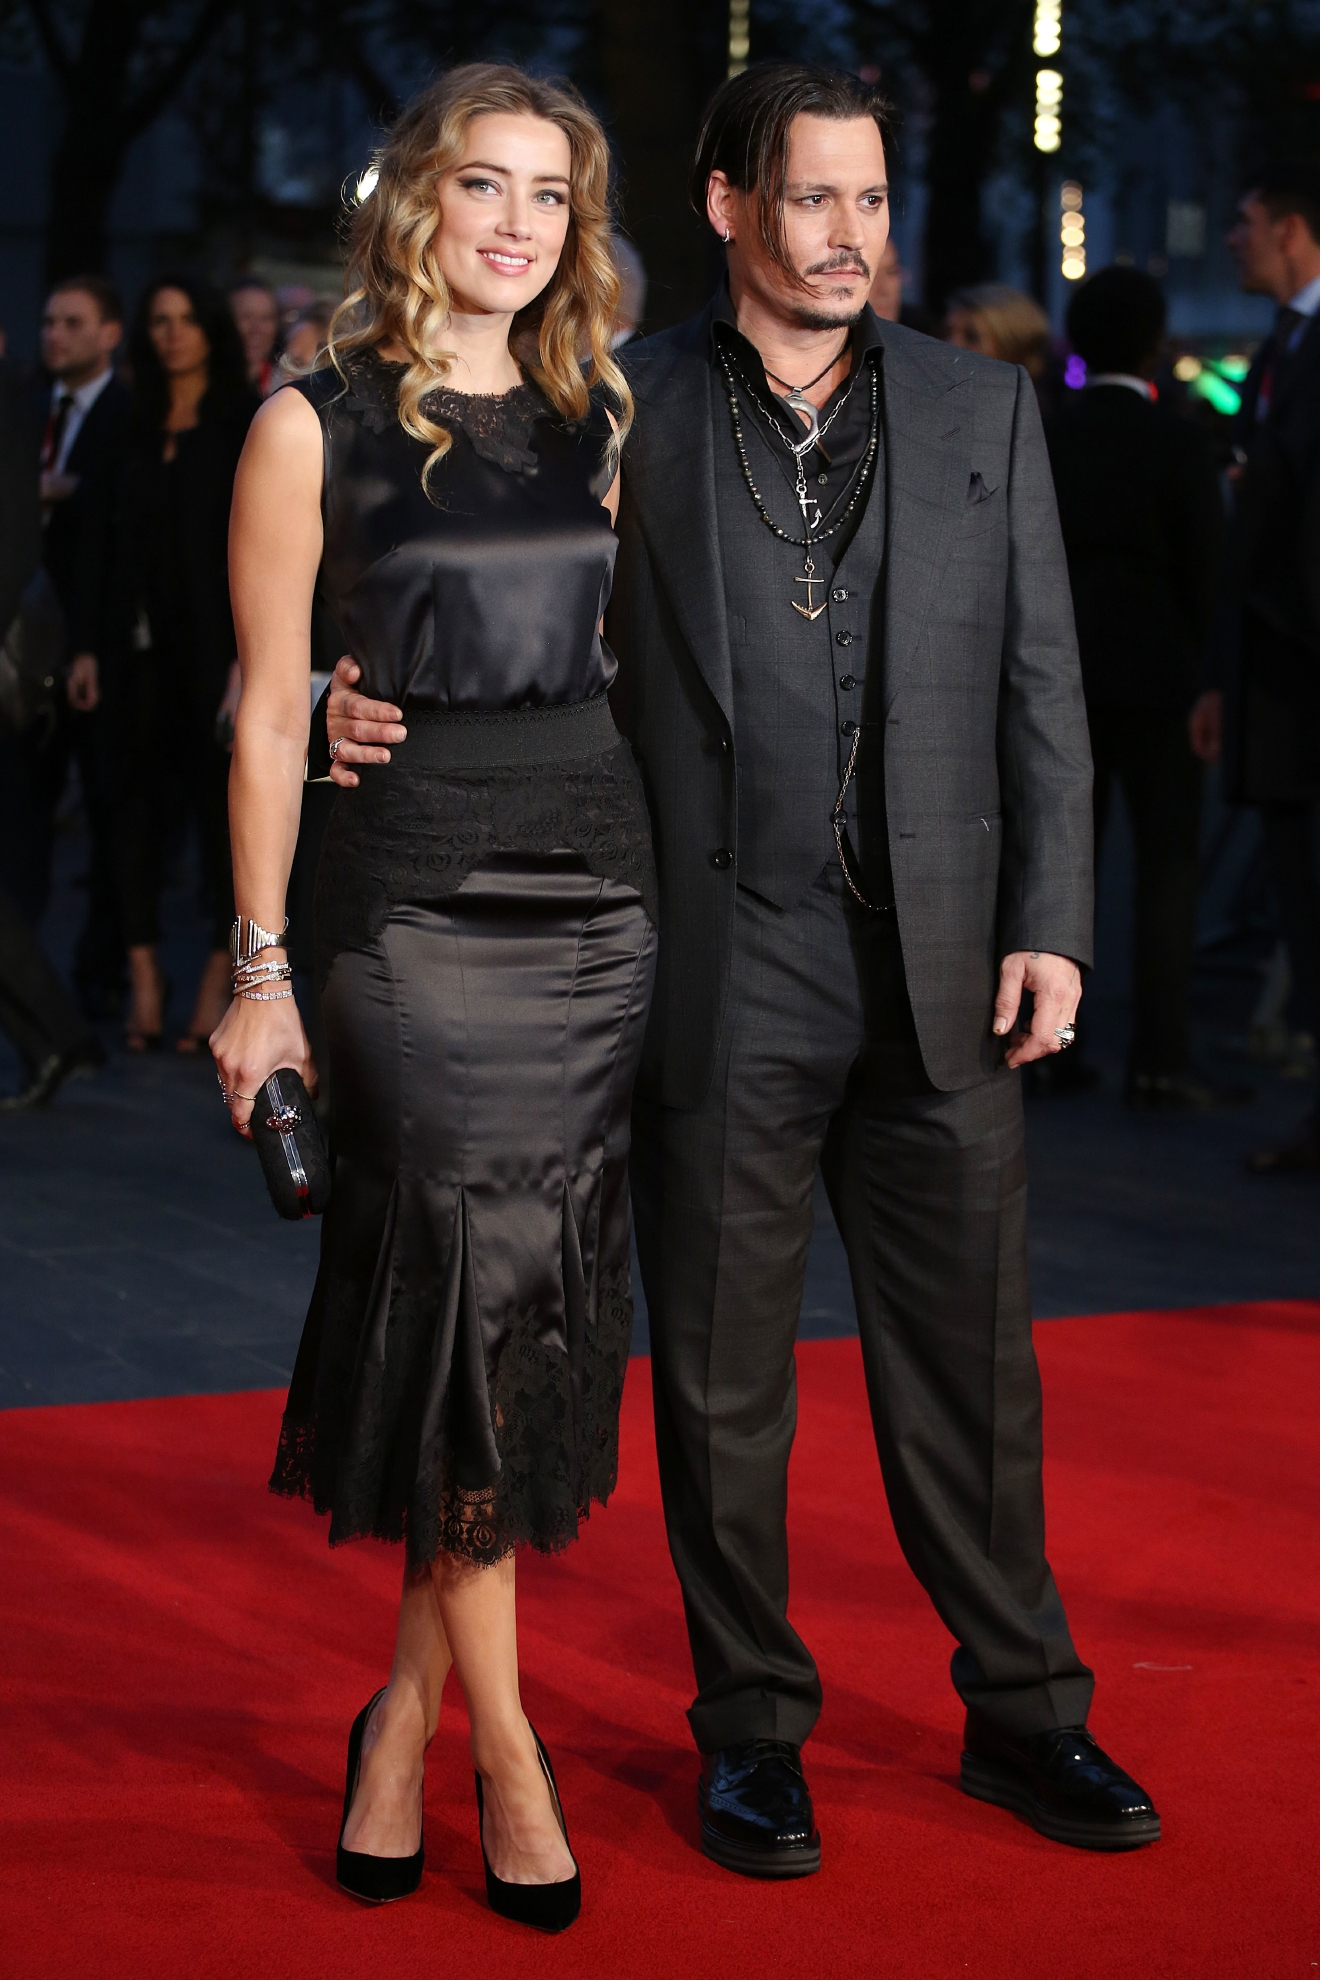 BFI London Film Festival - Black Mass premiere held at the Odeon Cinema - Arrivals  Featuring: Amber Heard, Johnny Depp Where: London, United Kingdom When: 11 Oct 2015 Credit: Lia Toby/WENN.com